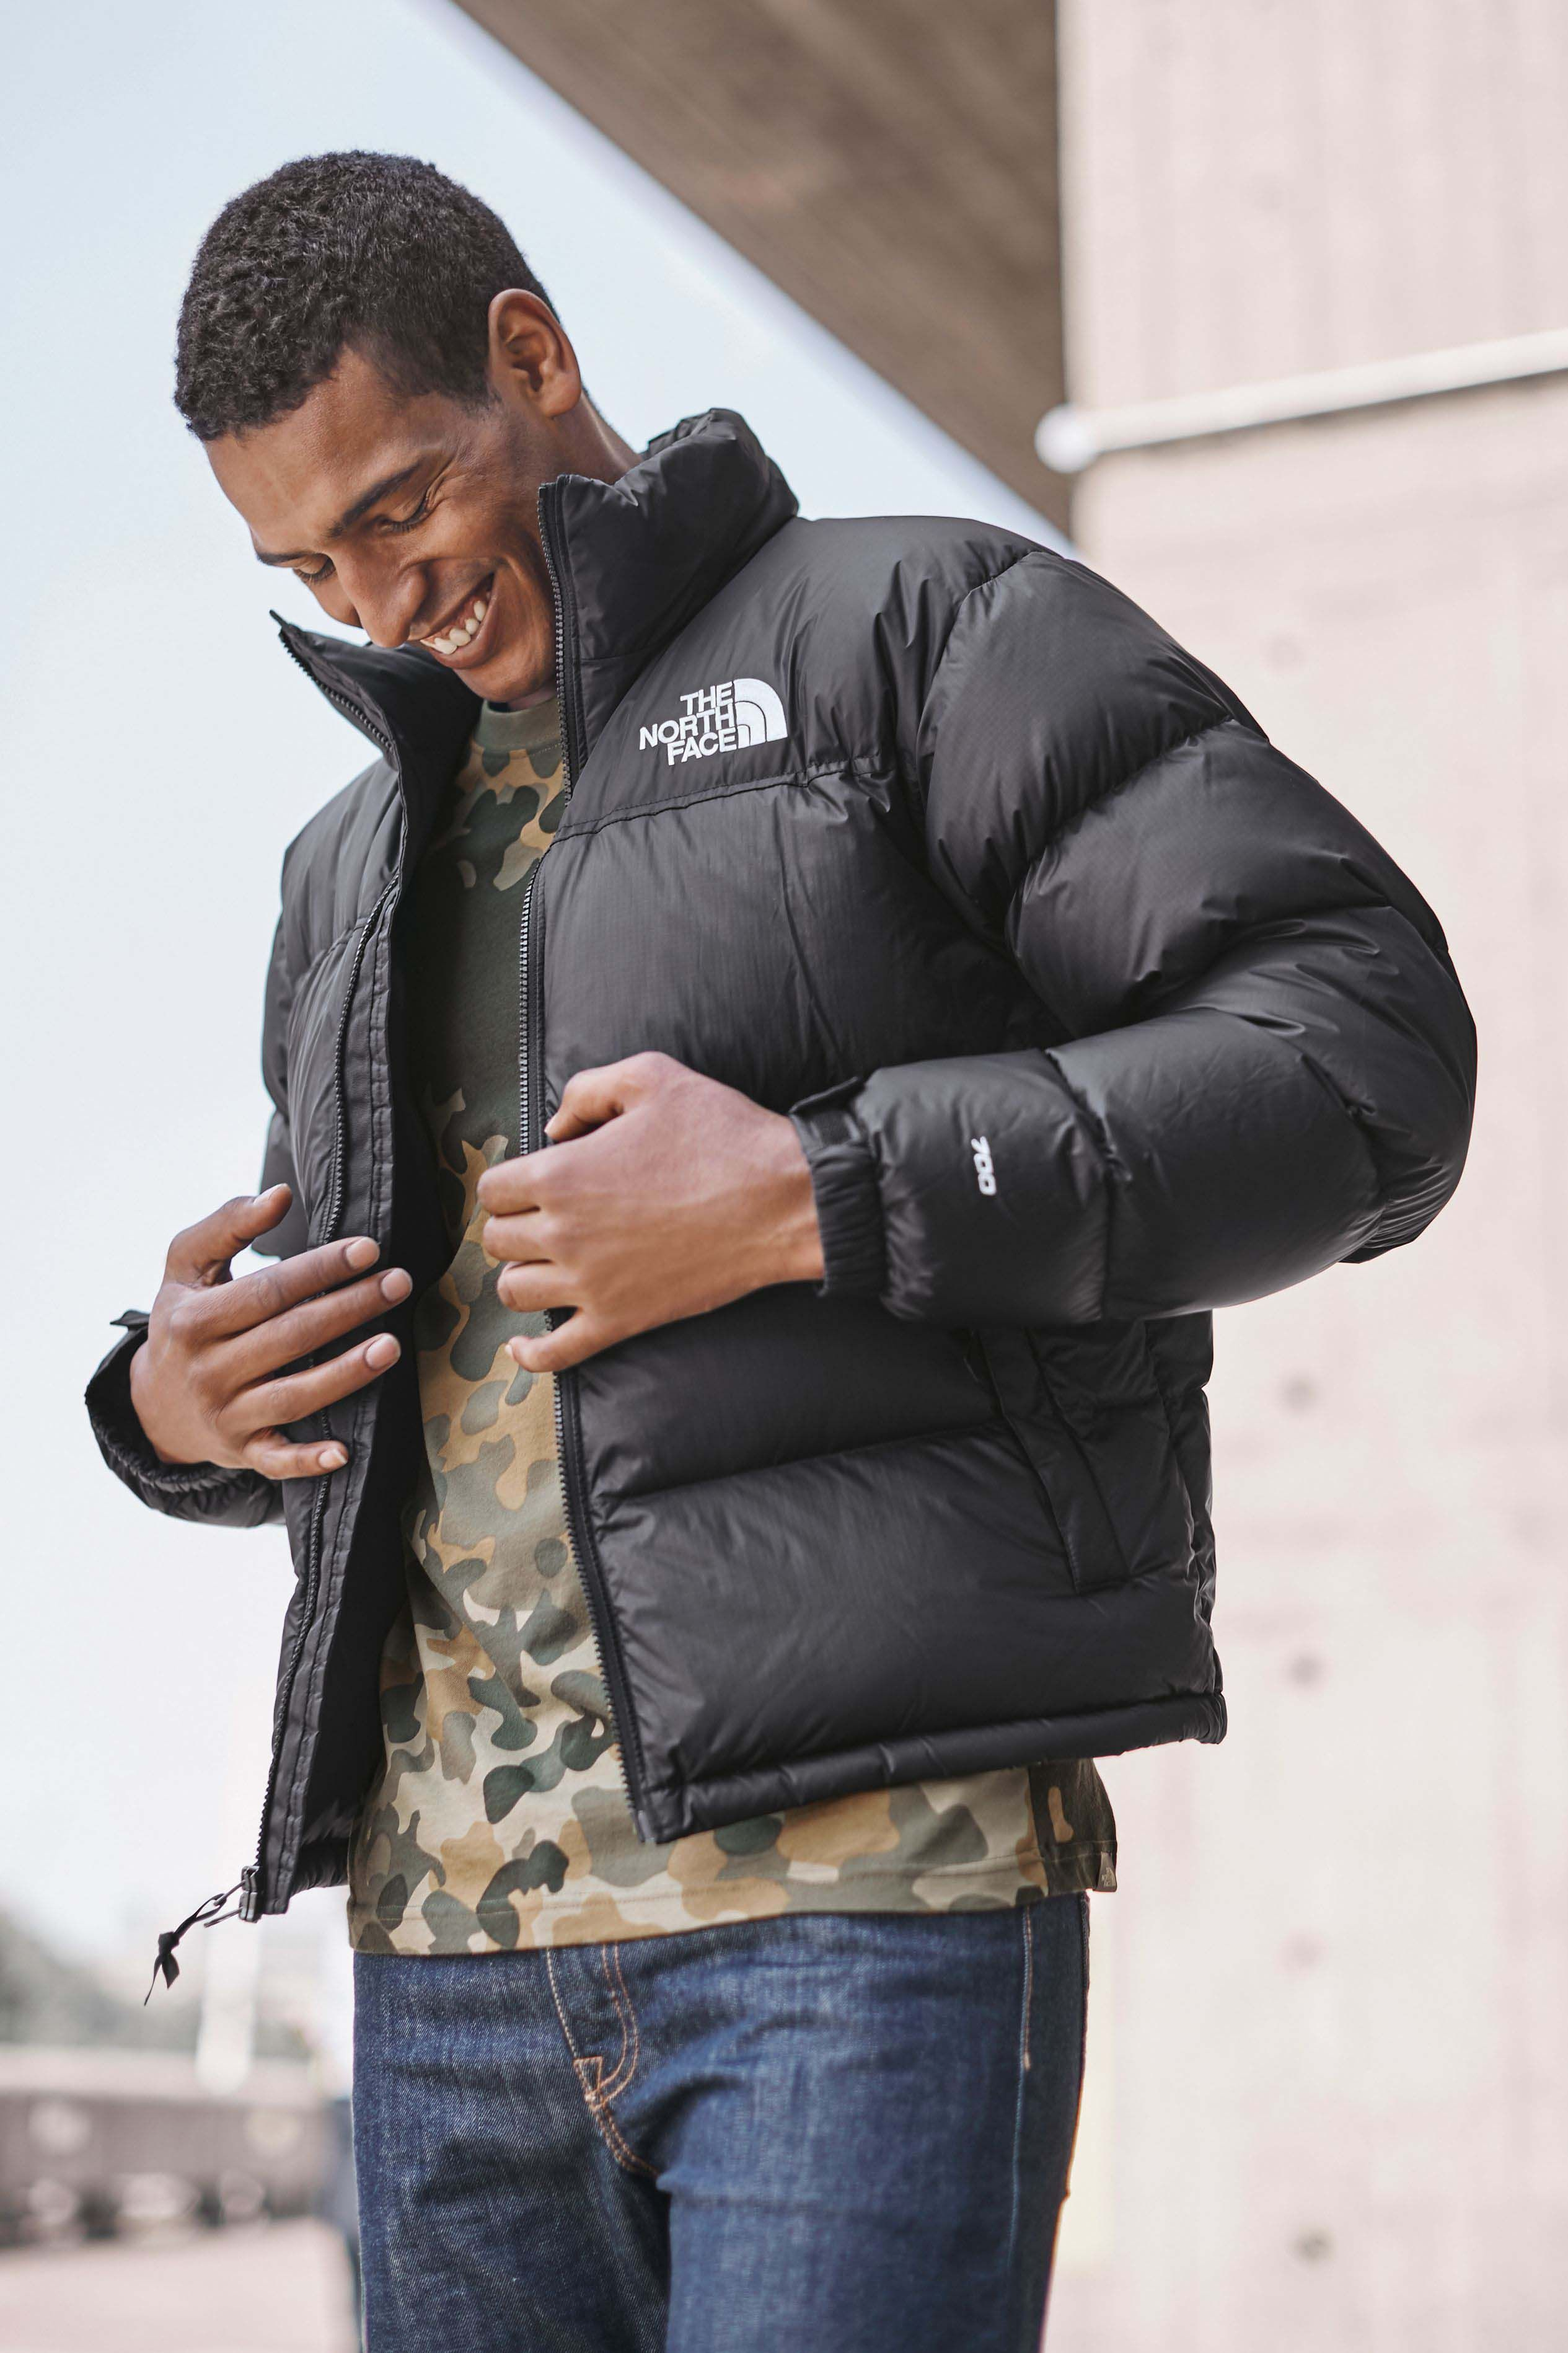 a731c1bb1 Mens The North Face 1996 Nuptse Jacket - Black in 2019 | Products ...